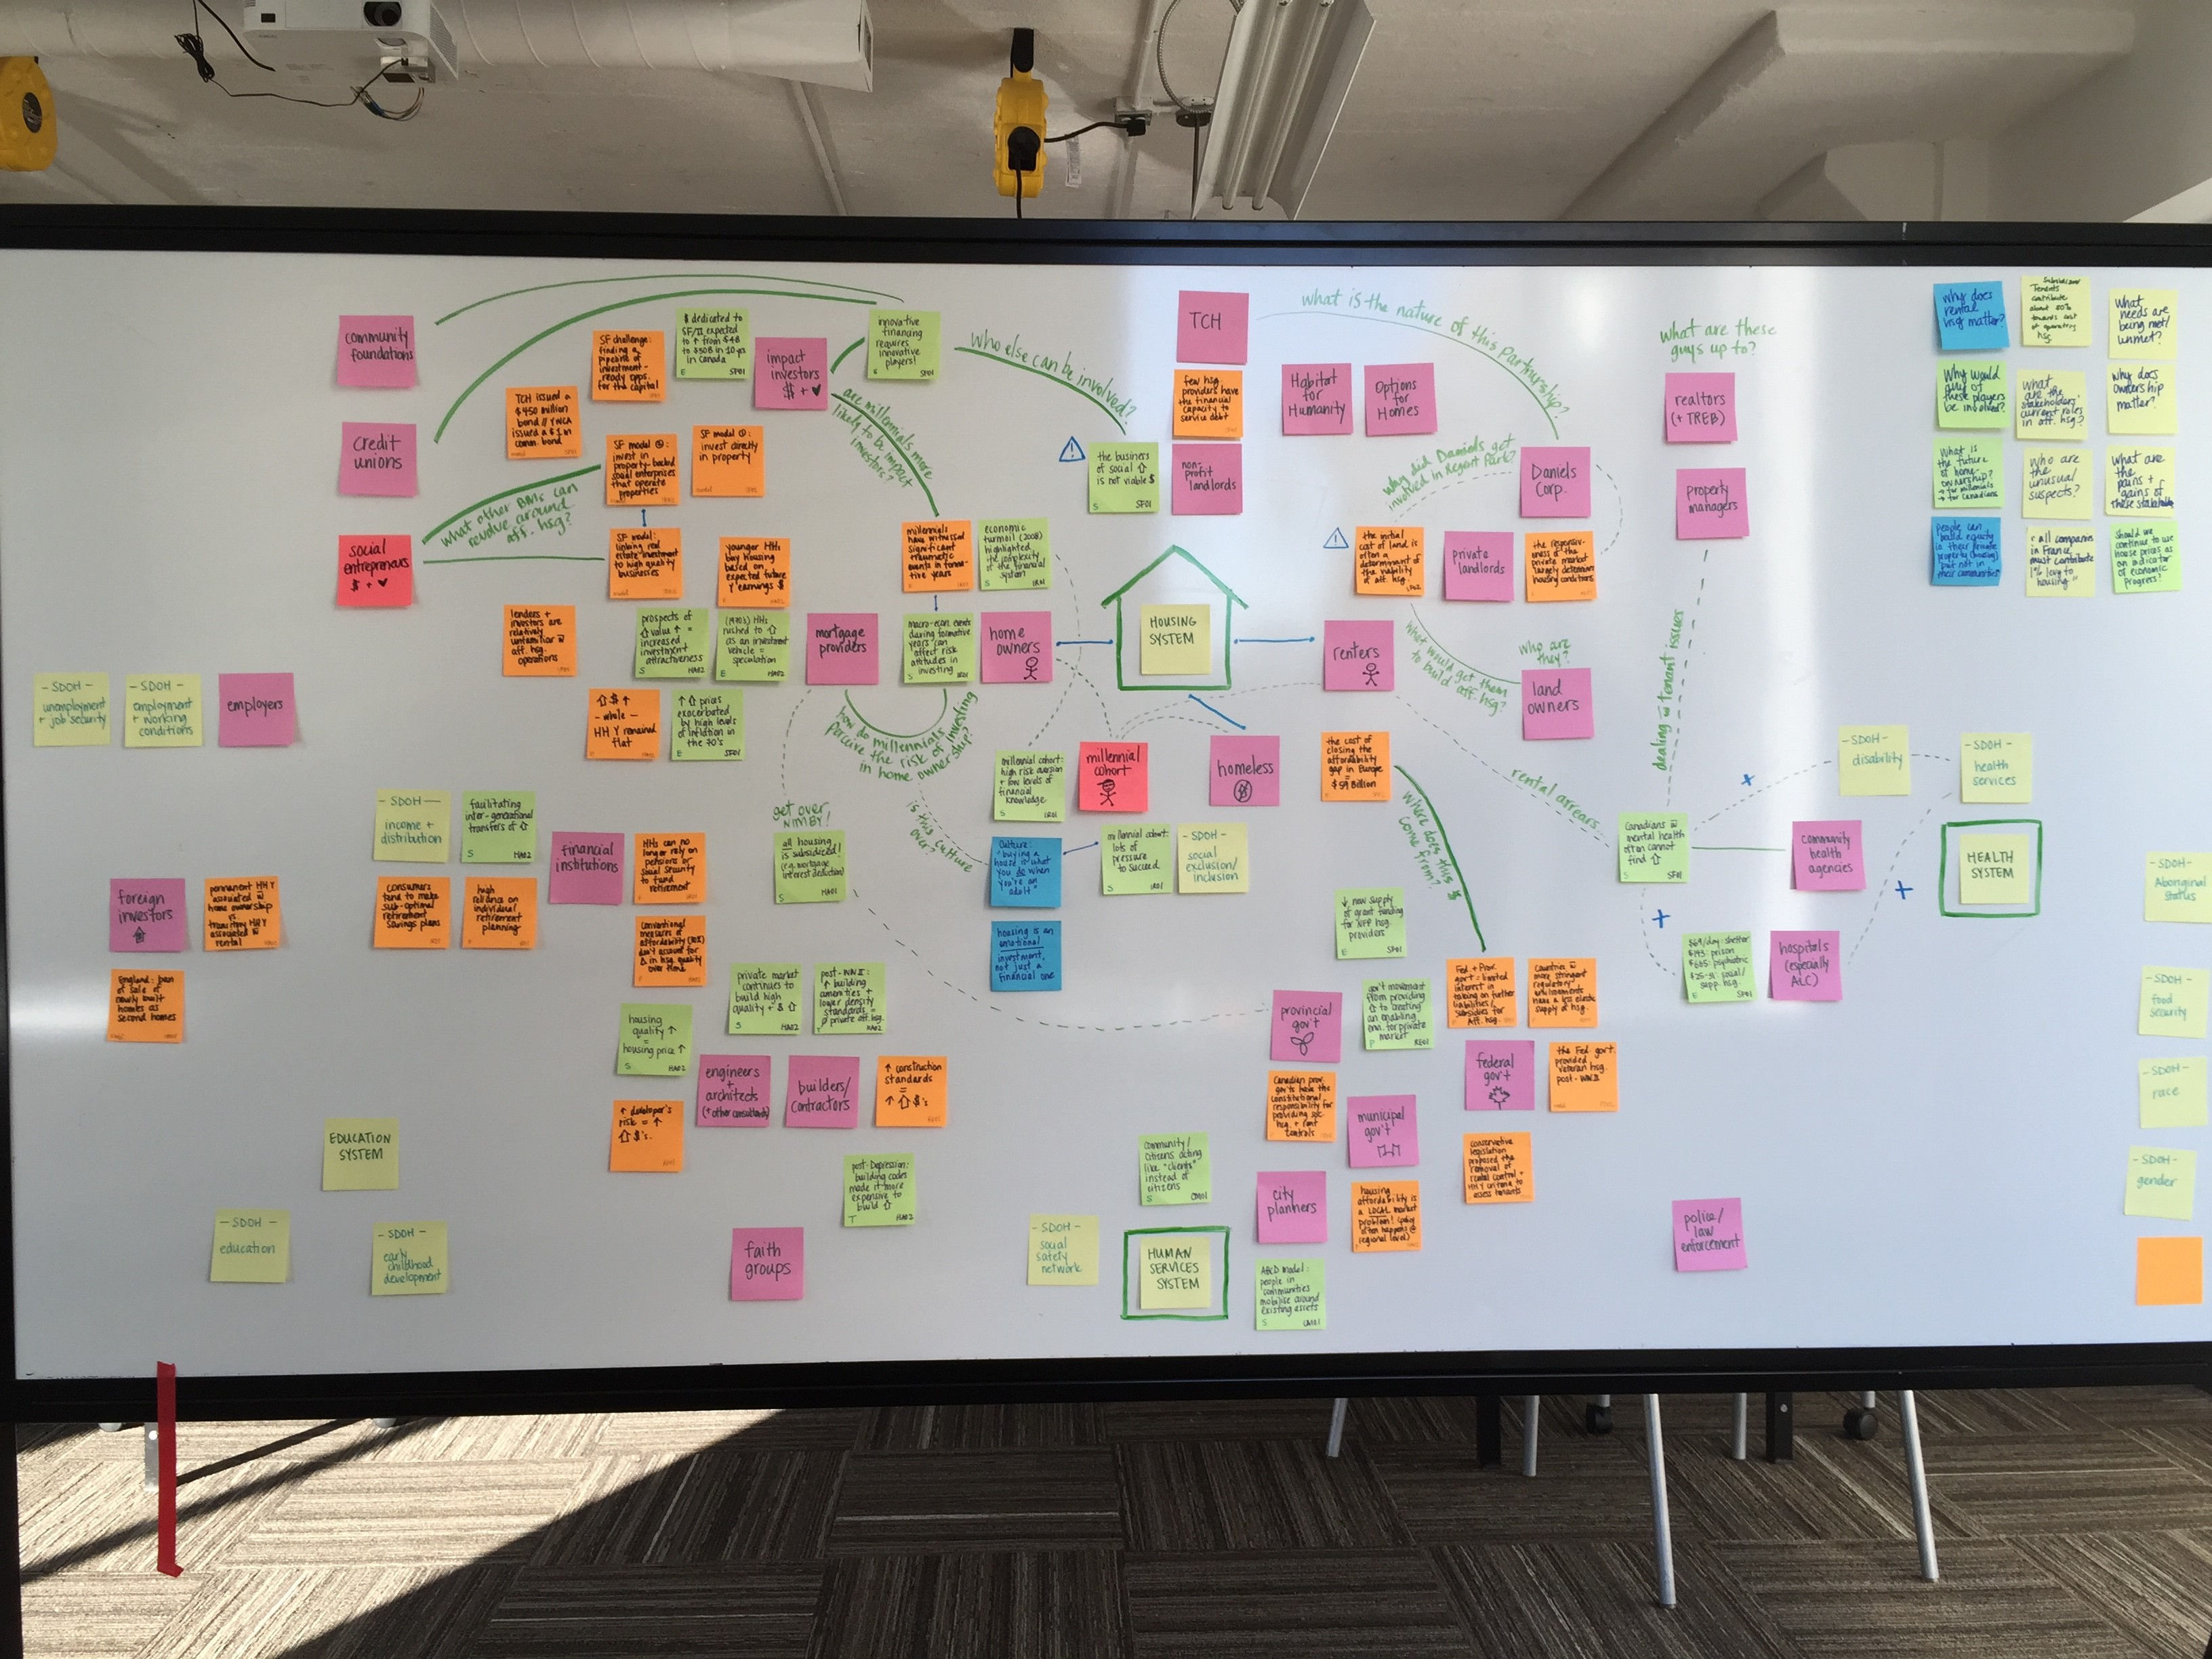 From ambiguity to empathy: How planners can collaborate to solve complex problems